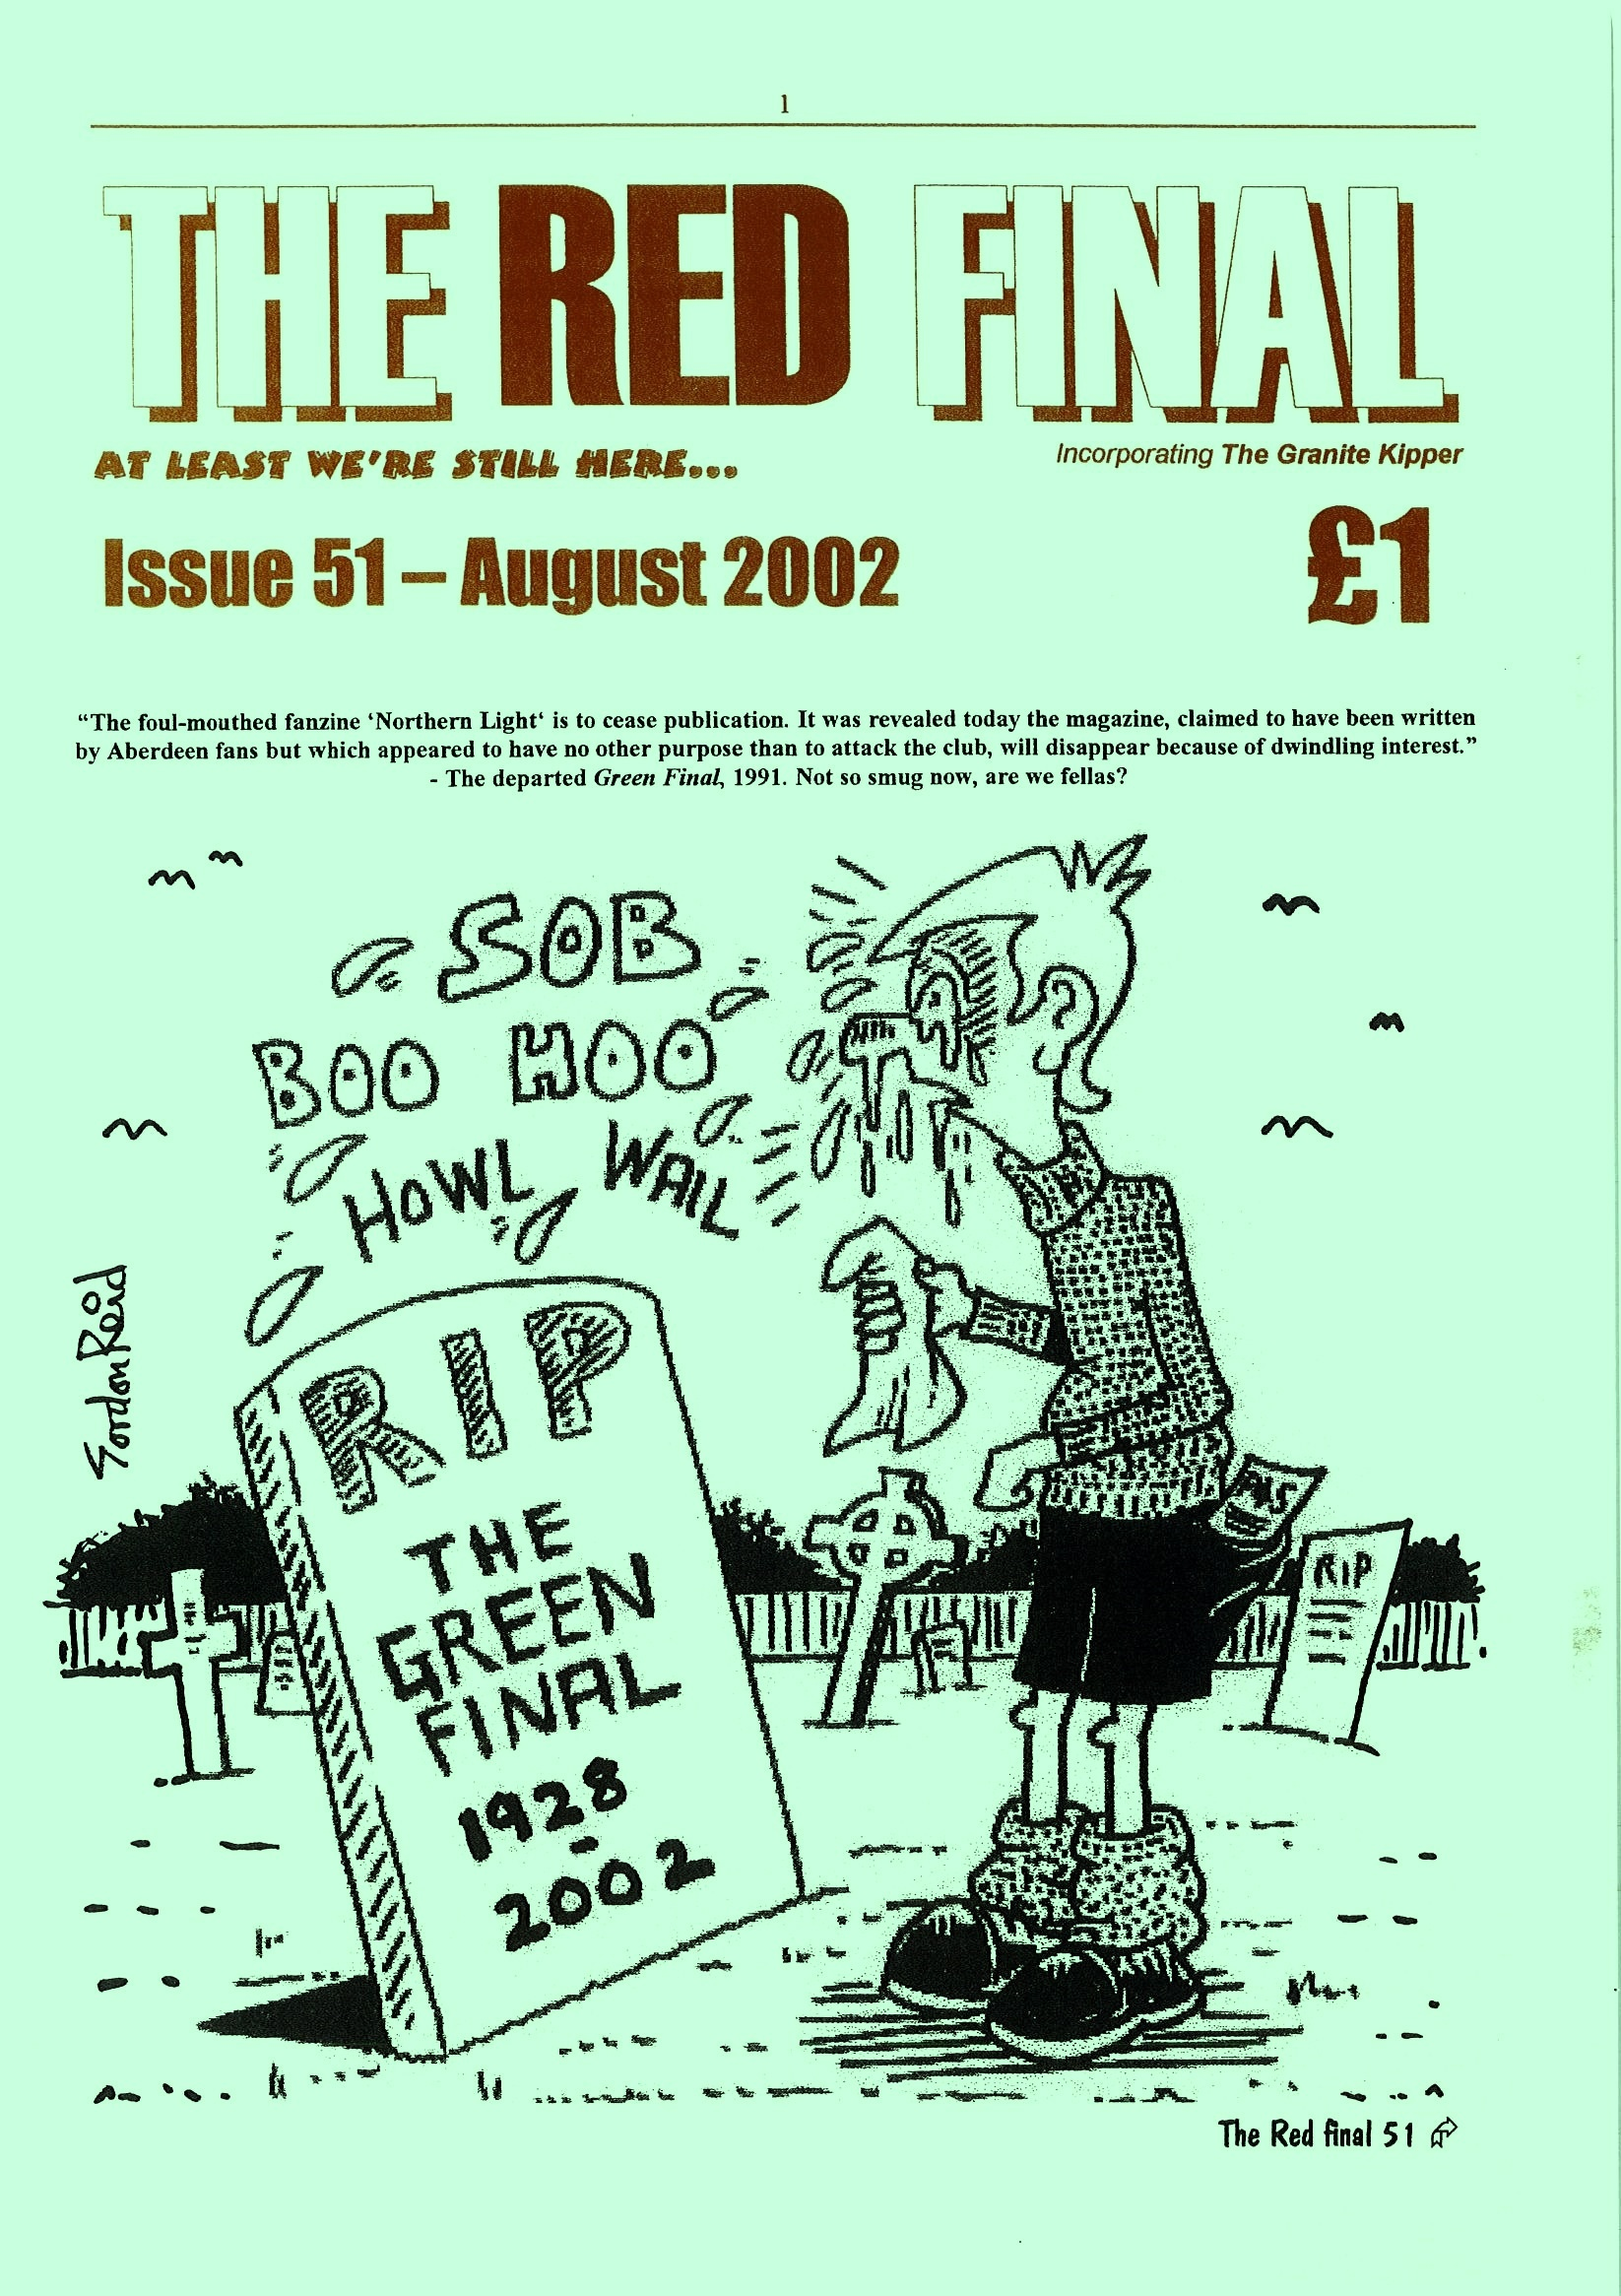 The Red Final, Issue 51